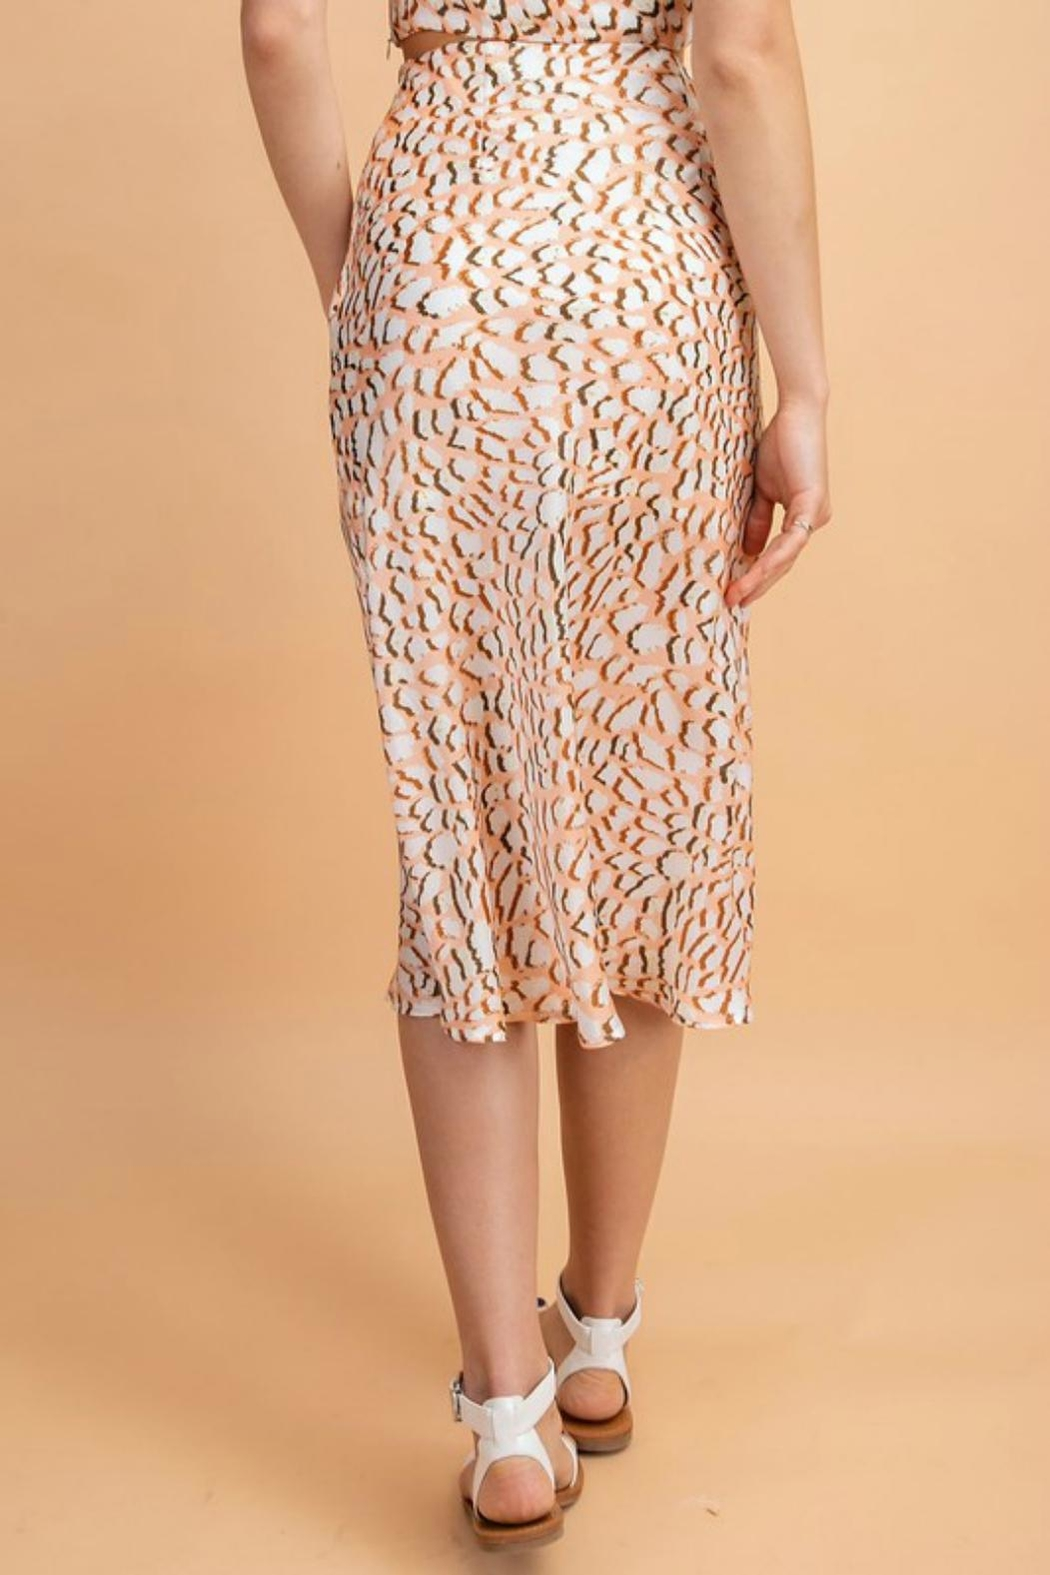 Pretty Little Things Peachy Leopard Skirt - Side Cropped Image